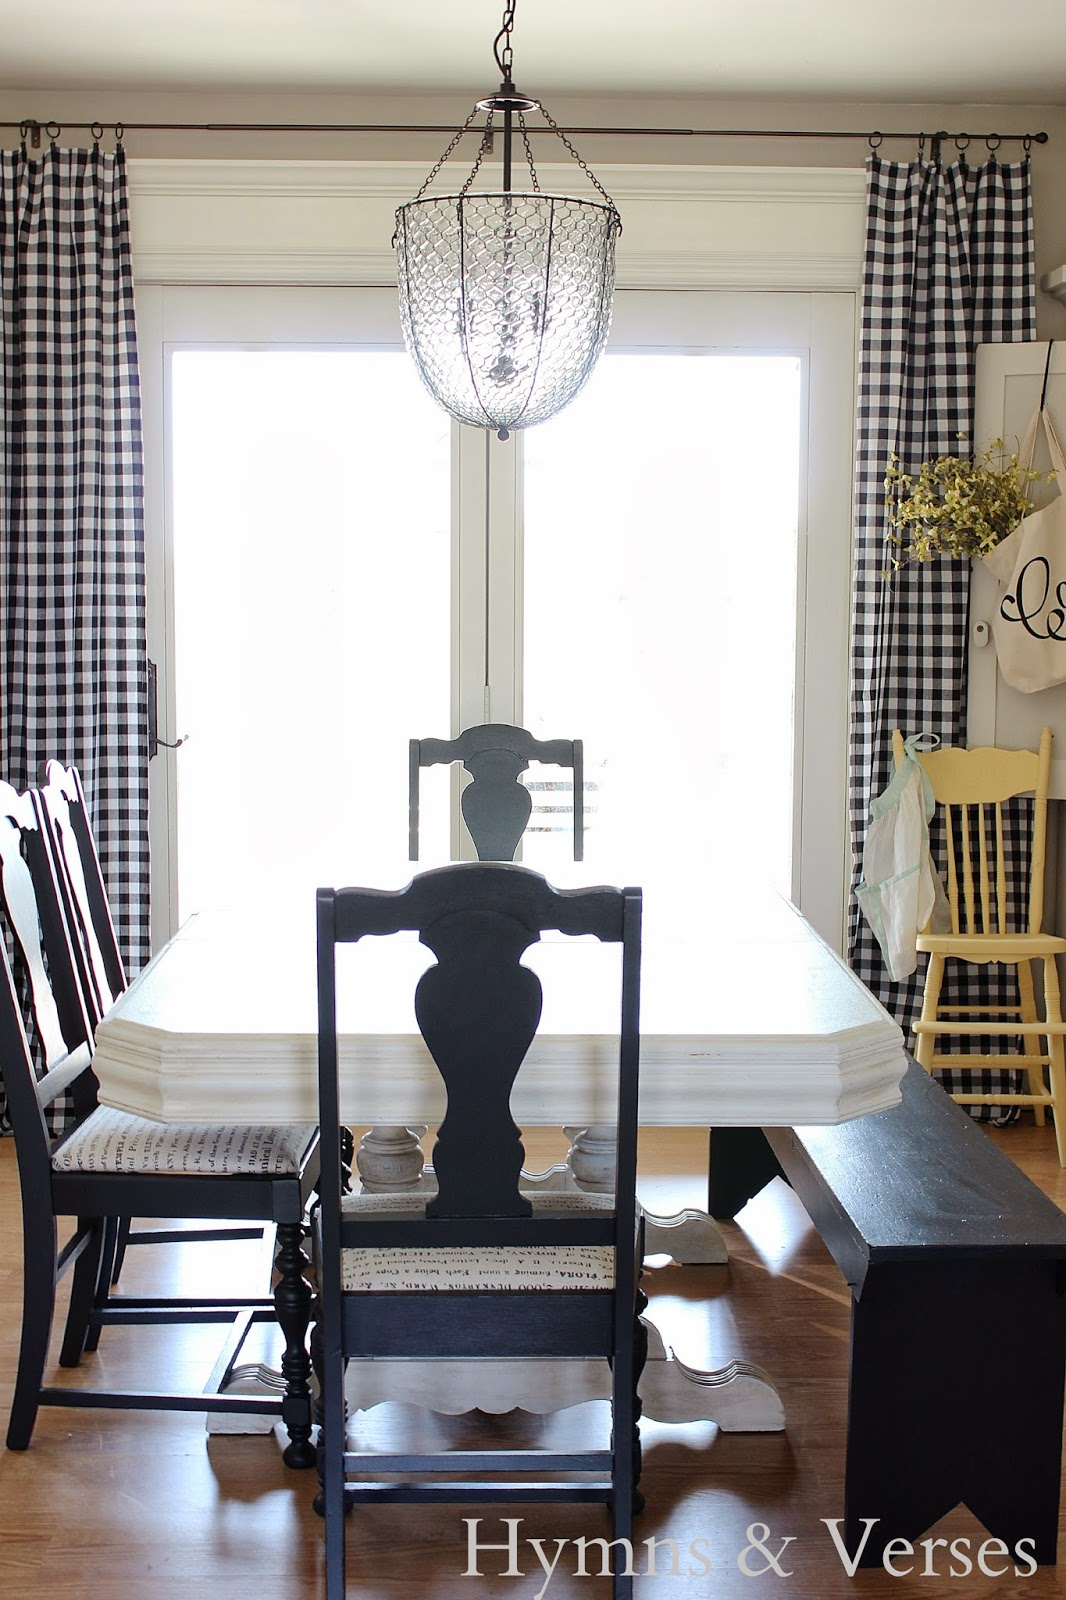 Hymns and Verses: Buffalo Check Curtains in the Dining Room